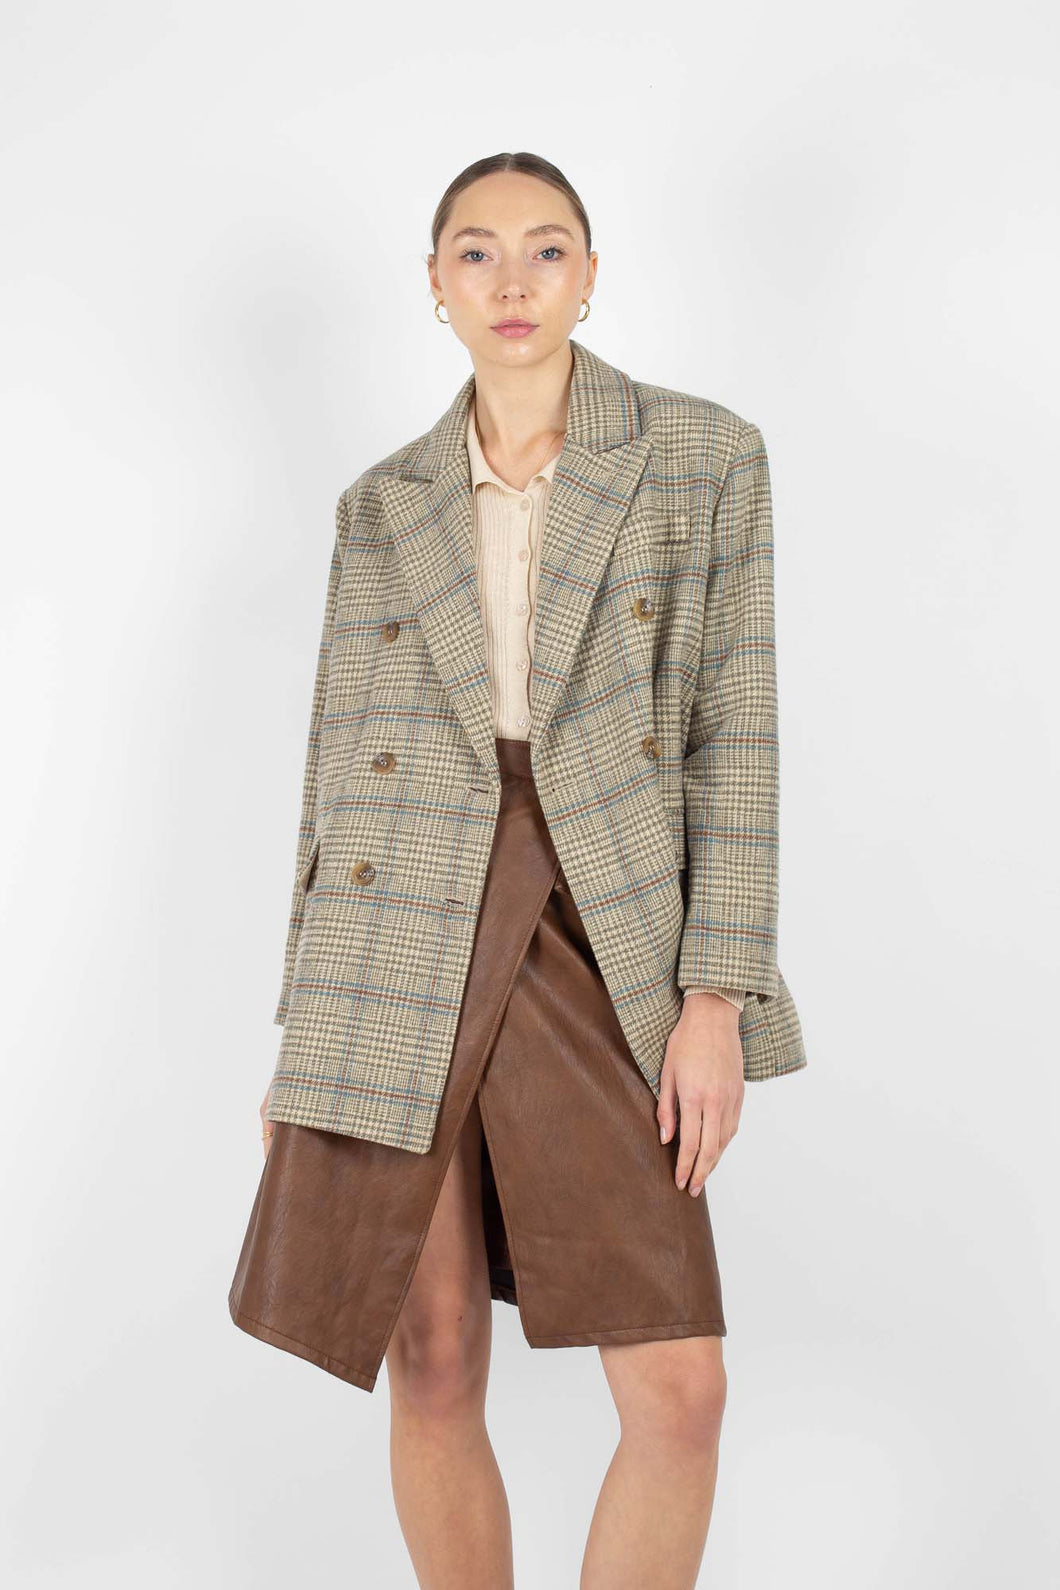 Khaki and blue checked double breasted oversized blazer1sx